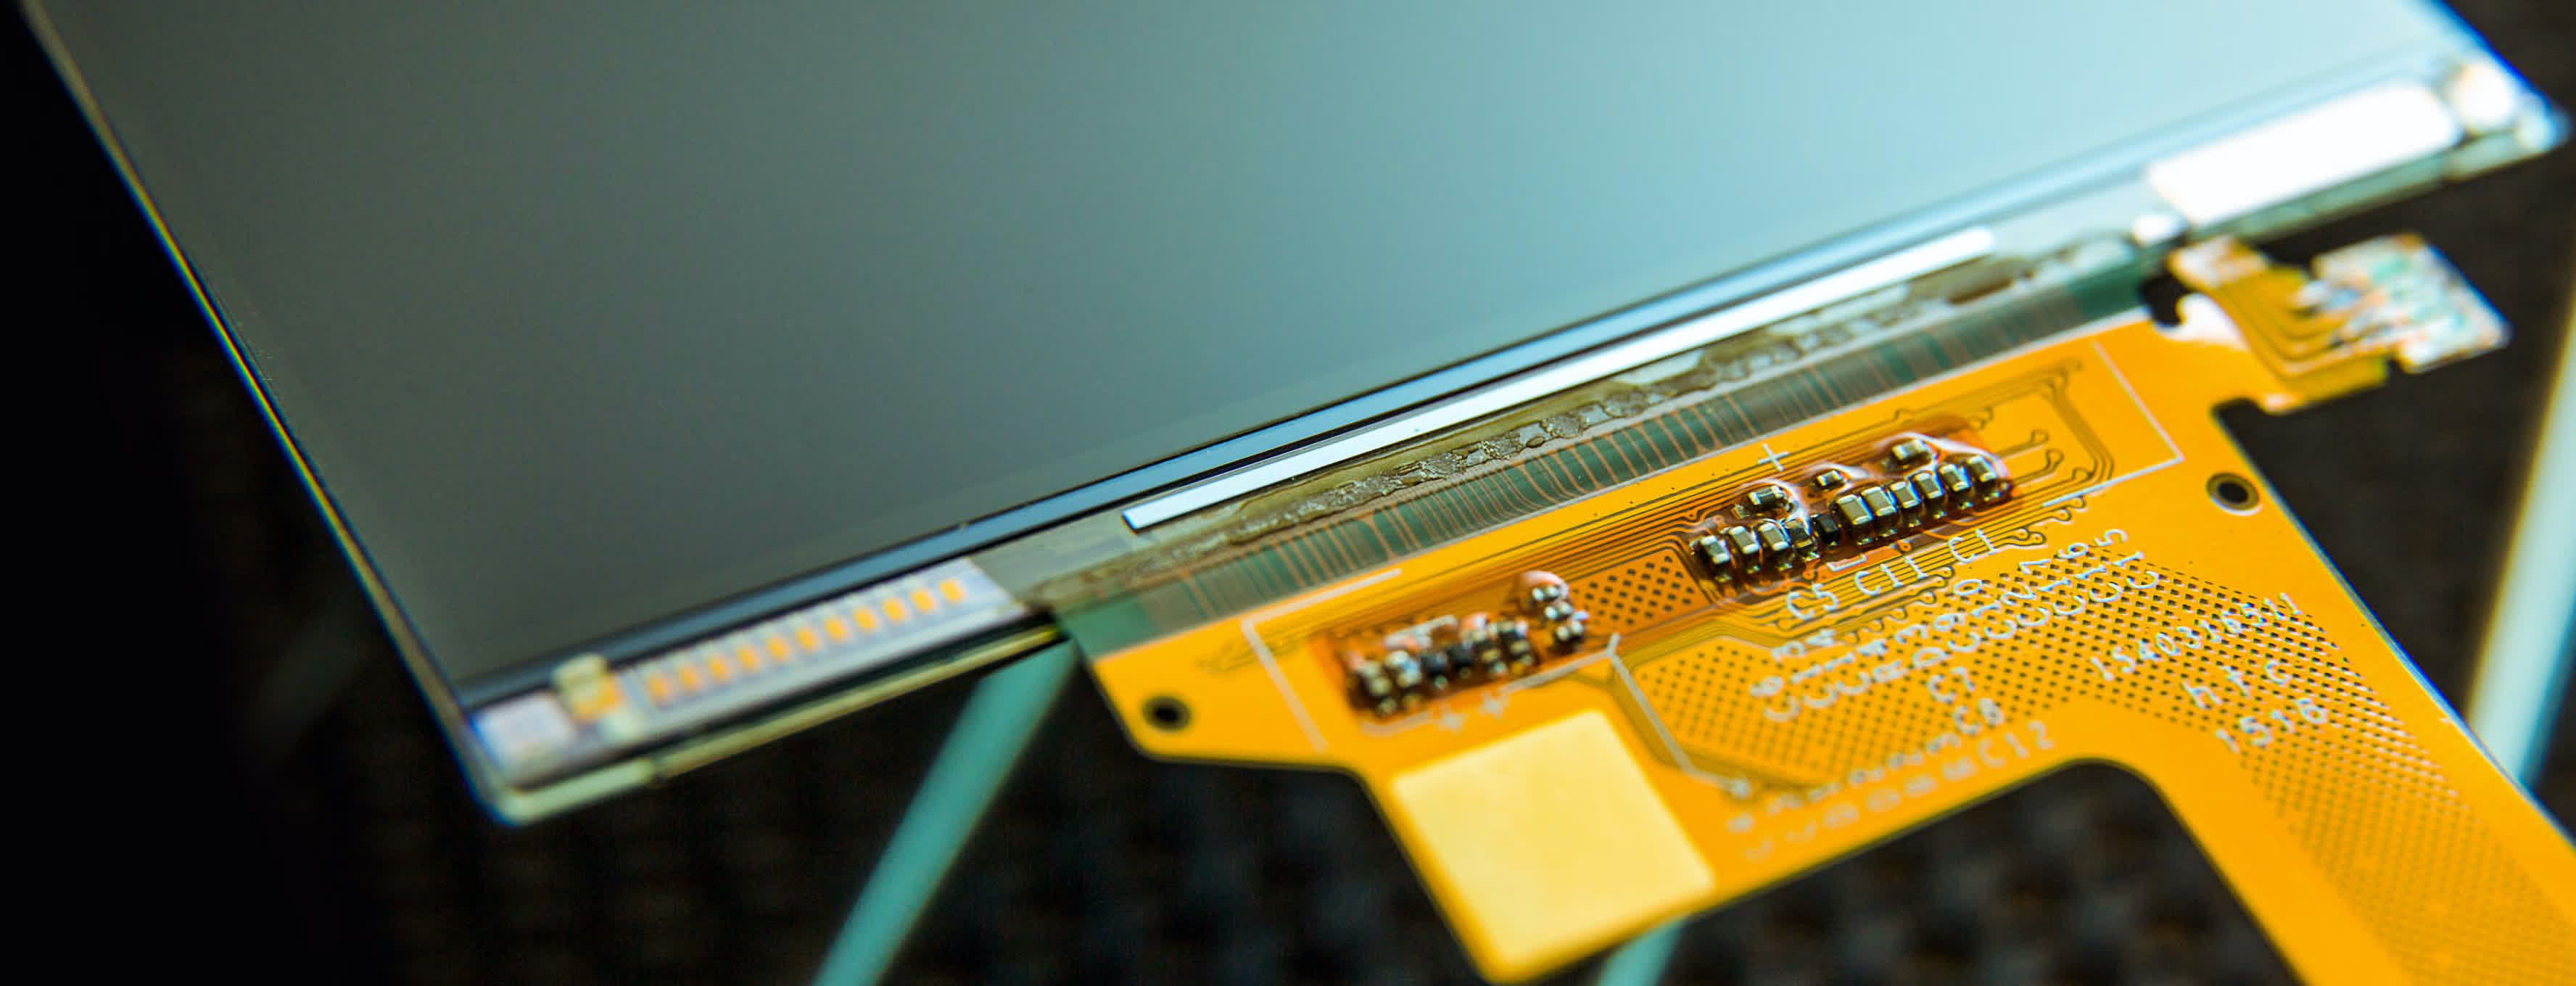 Shortage of $1 display driver chips is causing production delays for everything with a screen